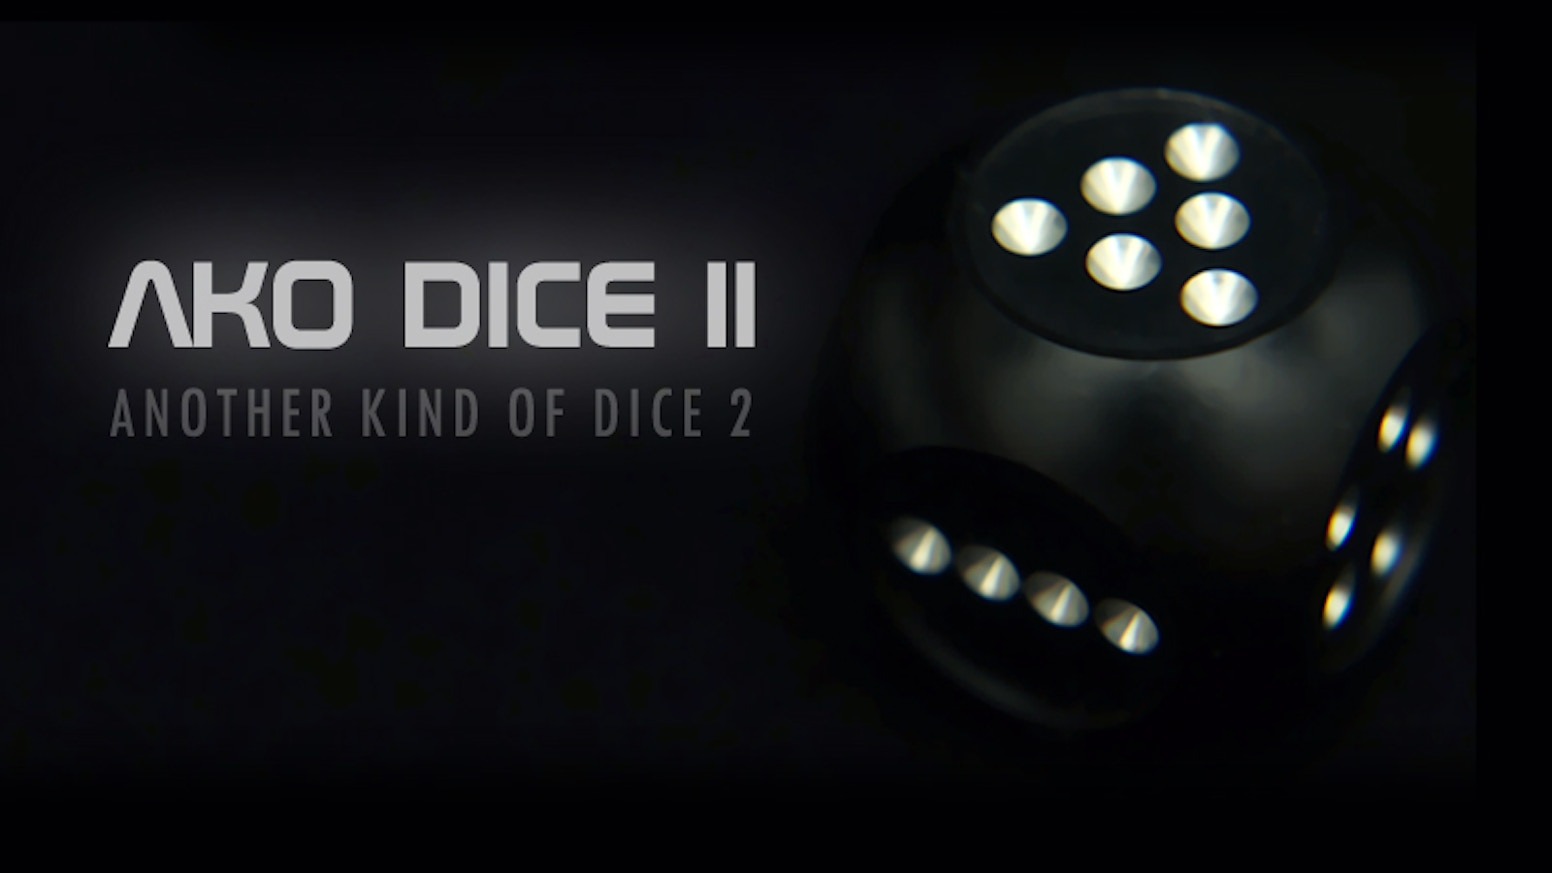 Completely redesigned, the newest version of AKO DICE!!